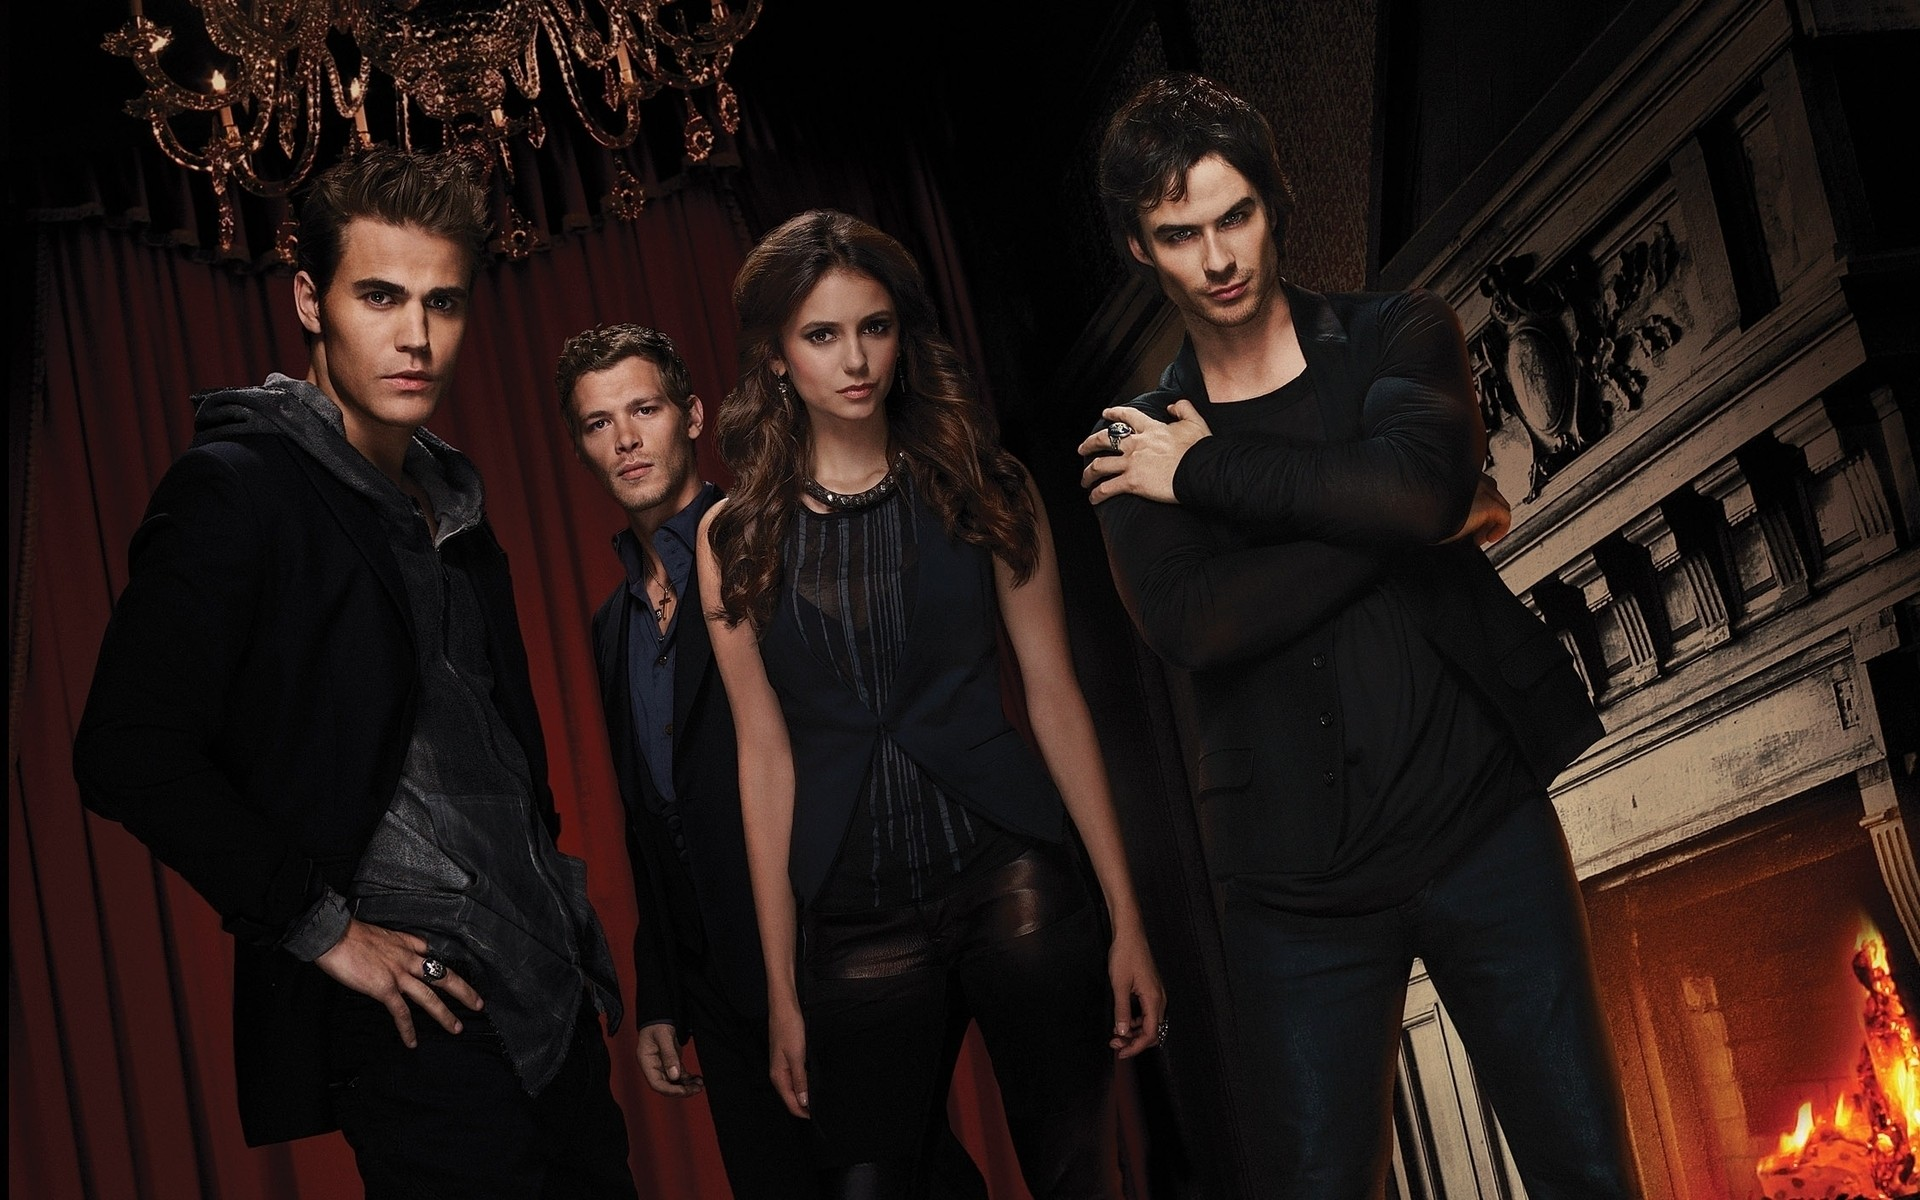 The vampire diaries actors android wallpapers for free voltagebd Gallery